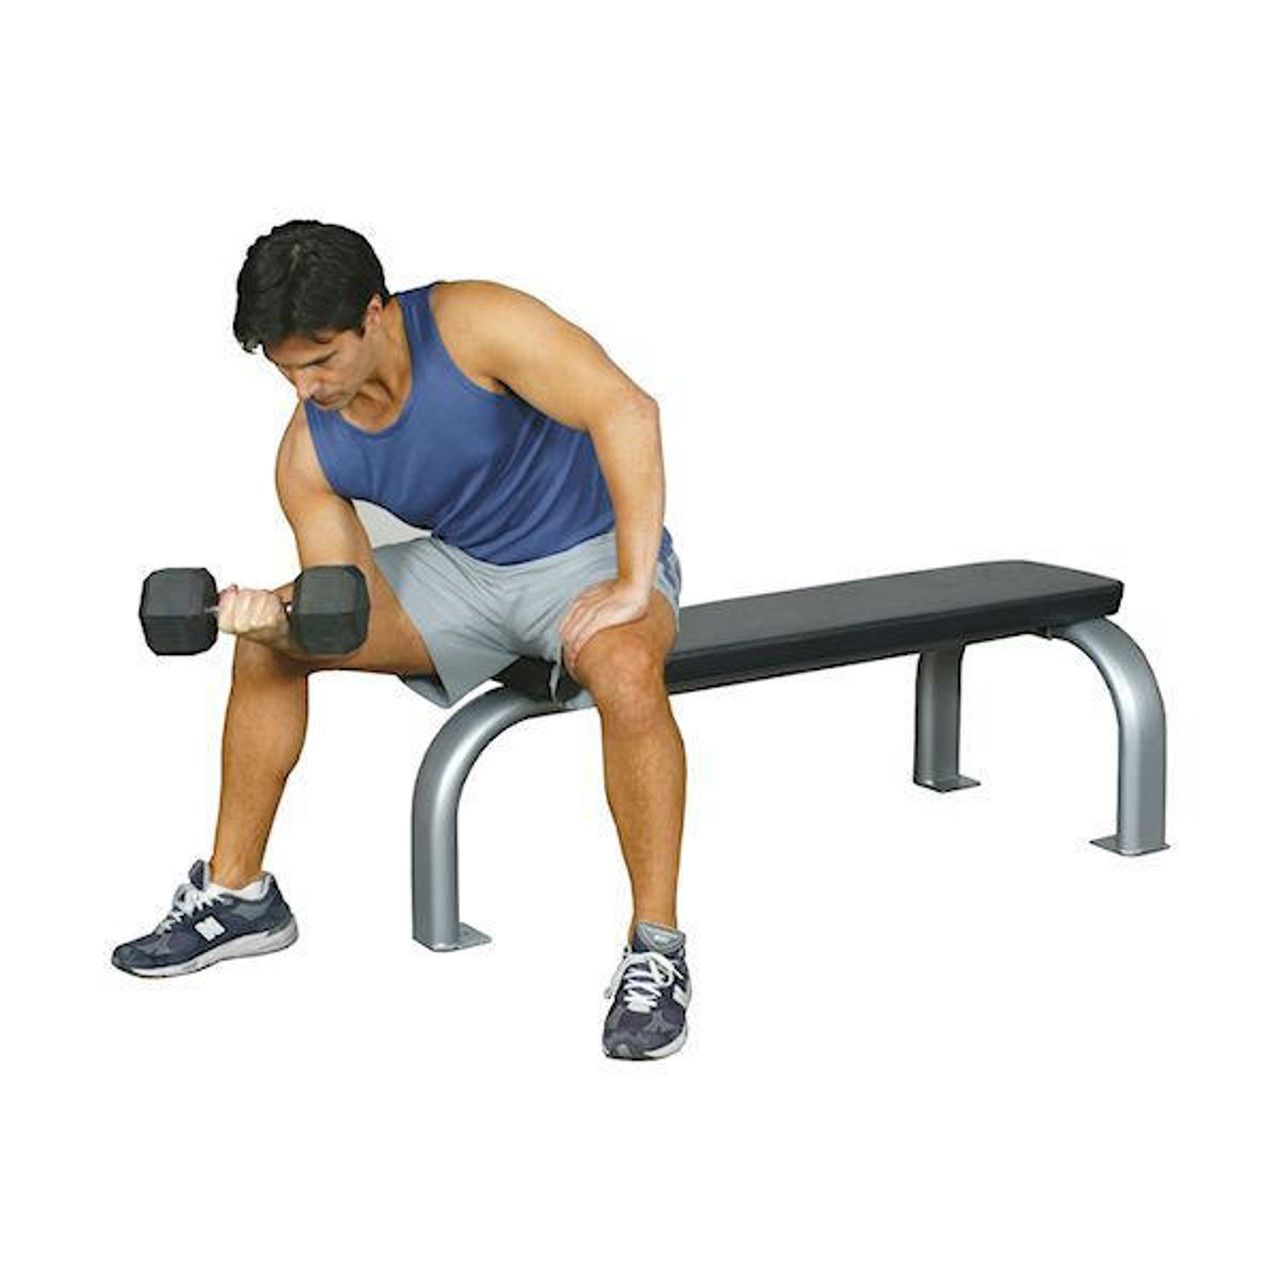 Stupendous Inflight Fitness Commercial Flat Bench Camellatalisay Diy Chair Ideas Camellatalisaycom